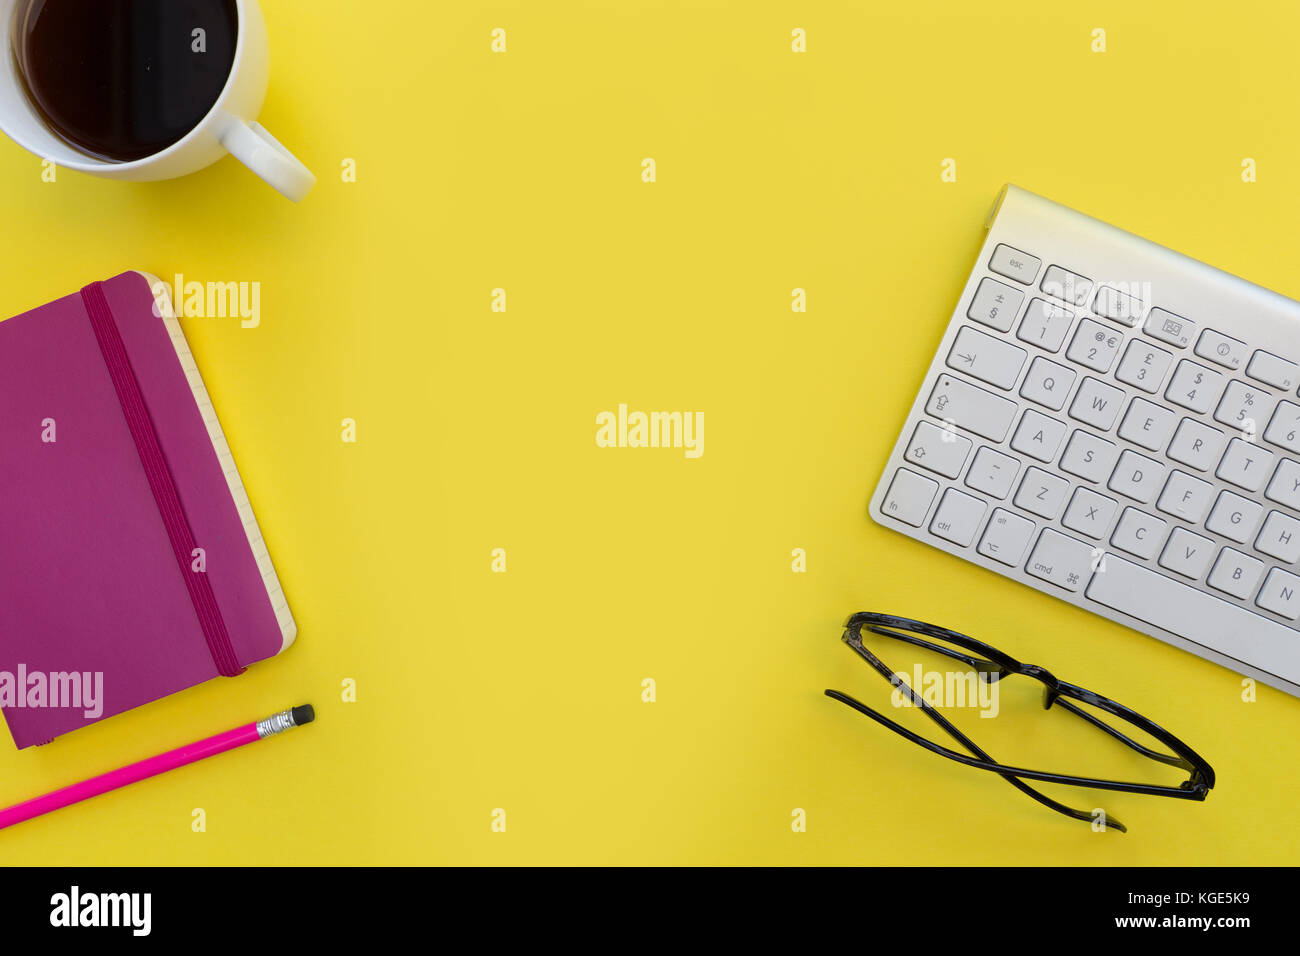 Computer keyboard pink notebook coffee and eyeglesses on bright yellow background - Stock Image